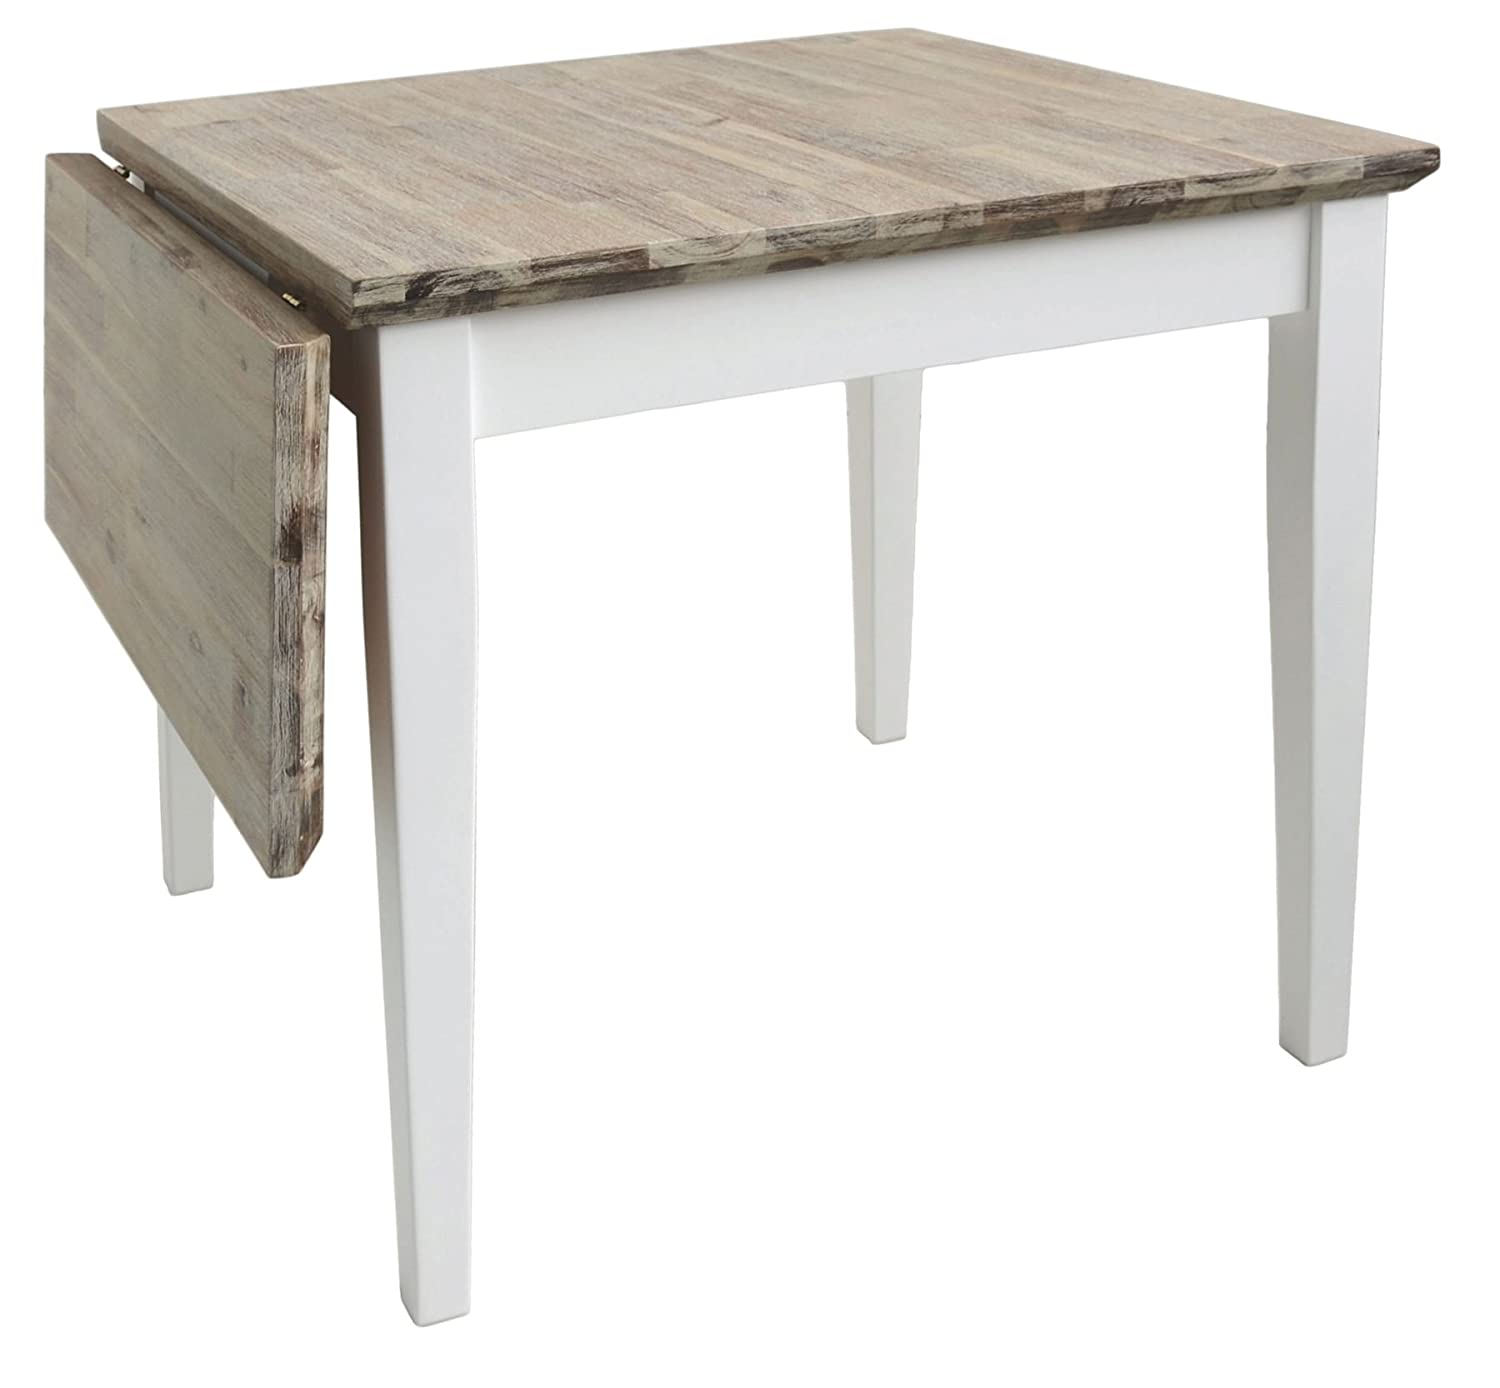 Florence square extended table (75-110cm). White extending kitchen table. Quality extending table with thick wooden top. Statement Furniture